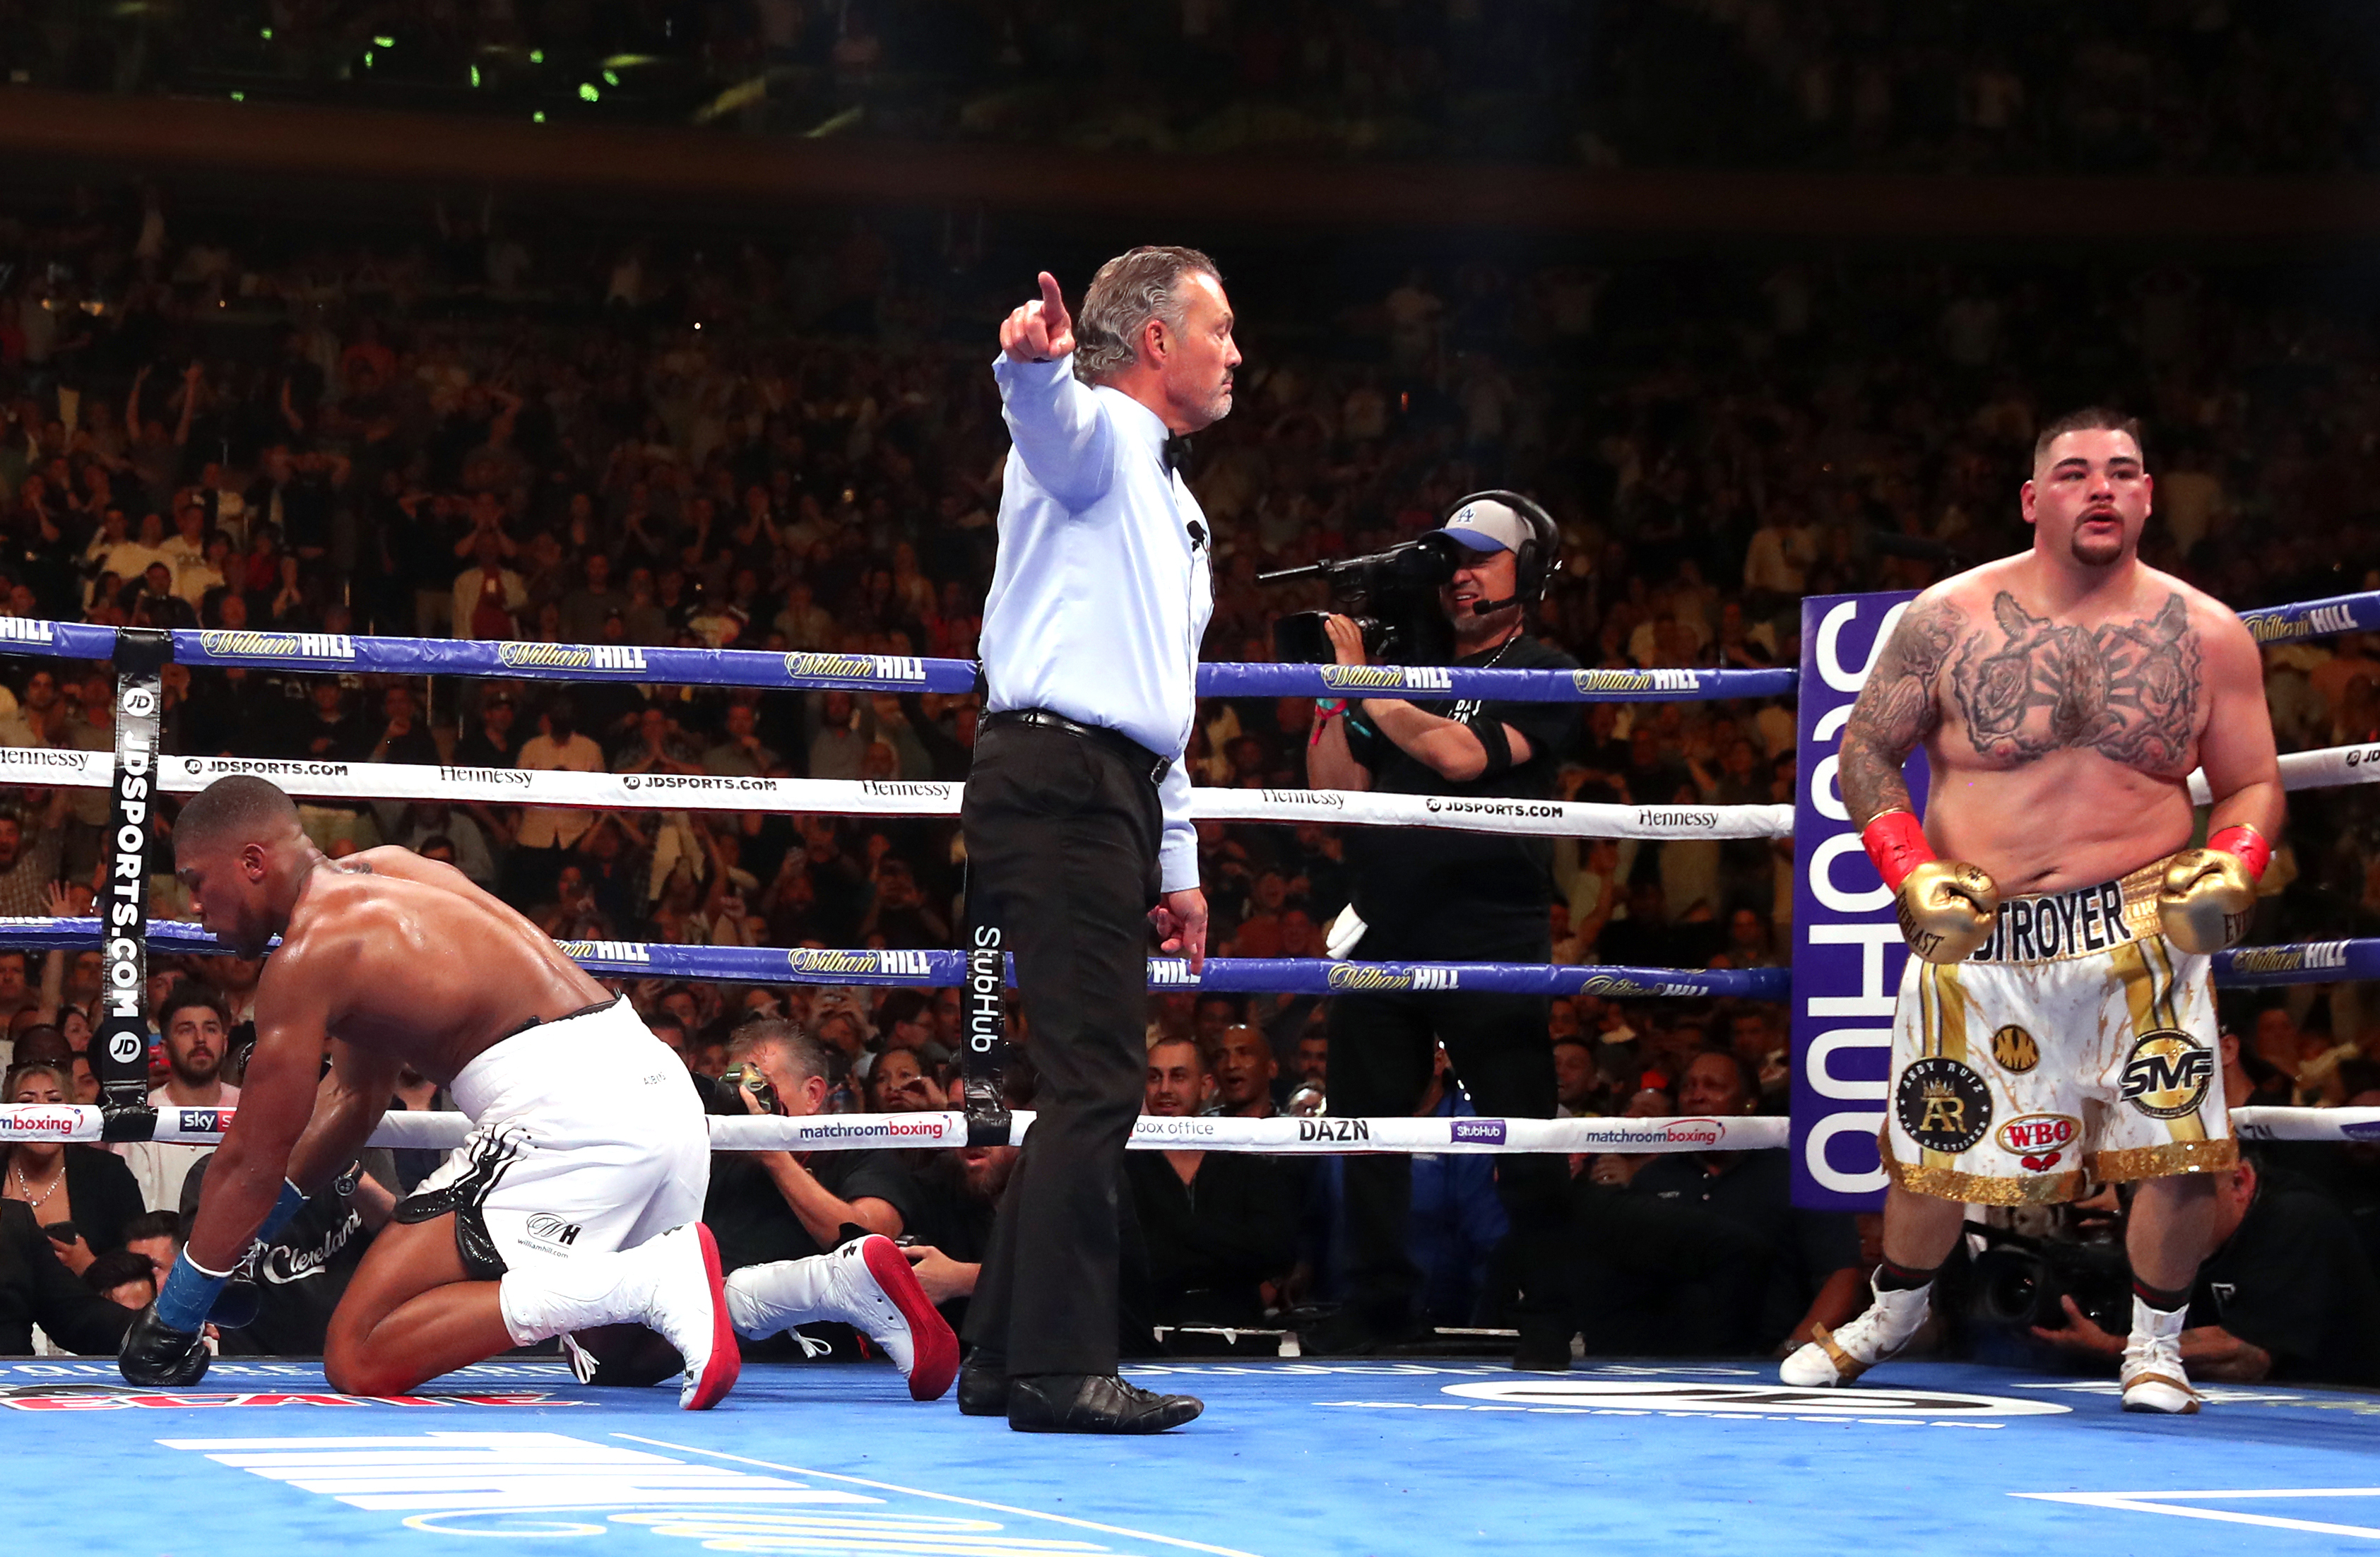 Ruiz vows to win rematch as Joshua is 'not good at boxing'